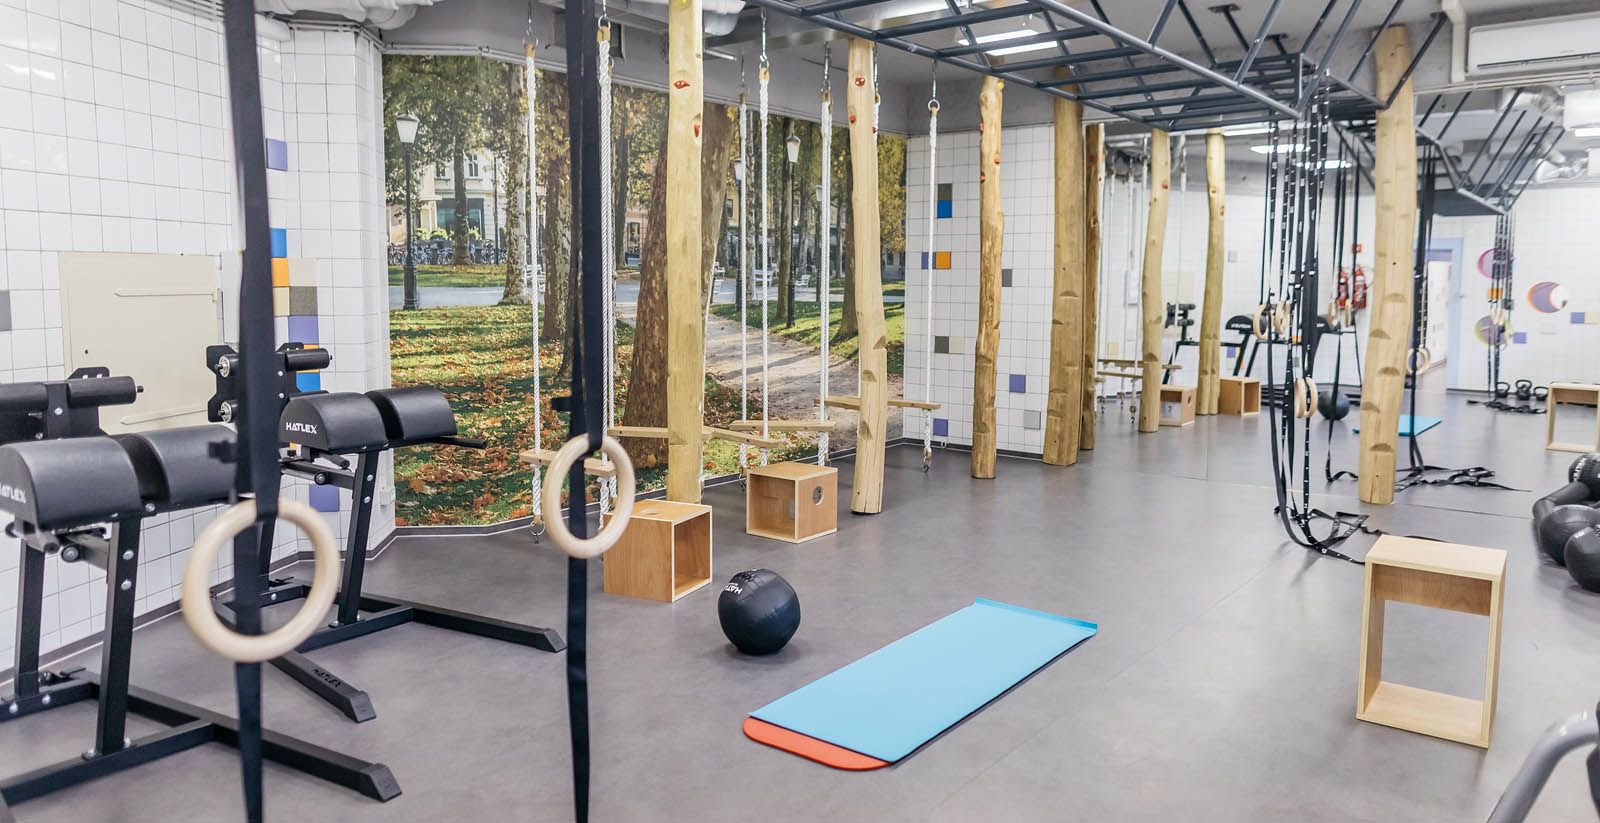 Gym at uHotel in Ljubjana